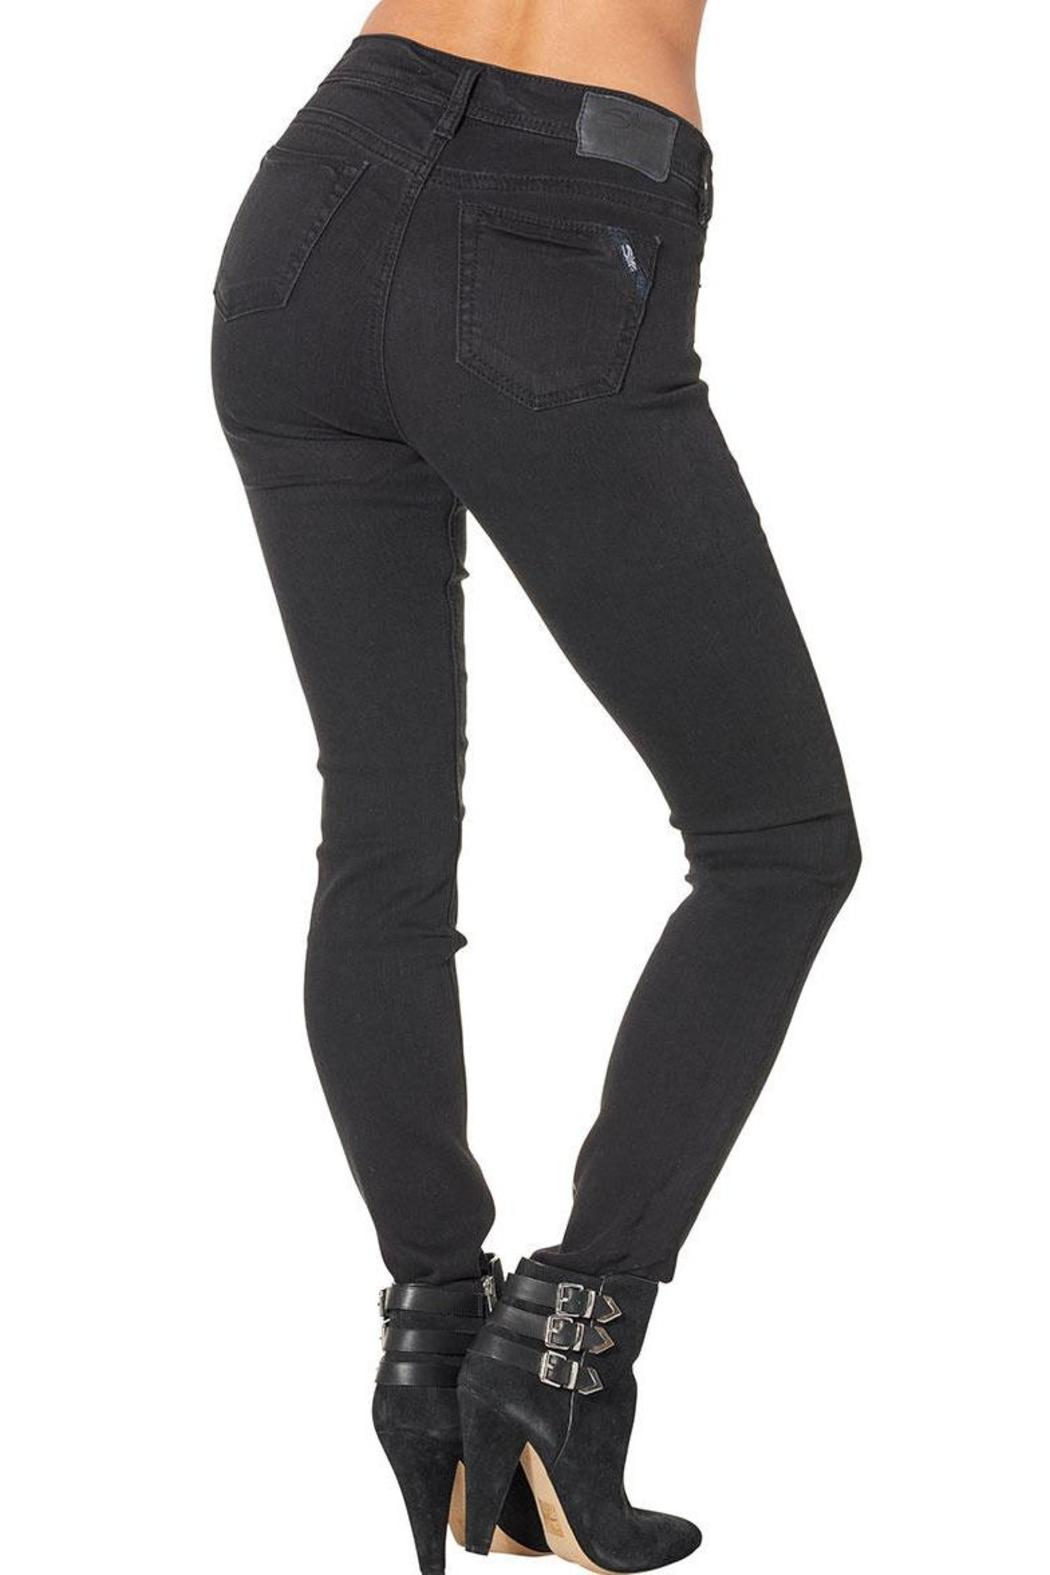 Silver Jeans Co. Aiko Skinny Jeans - Front Full Image